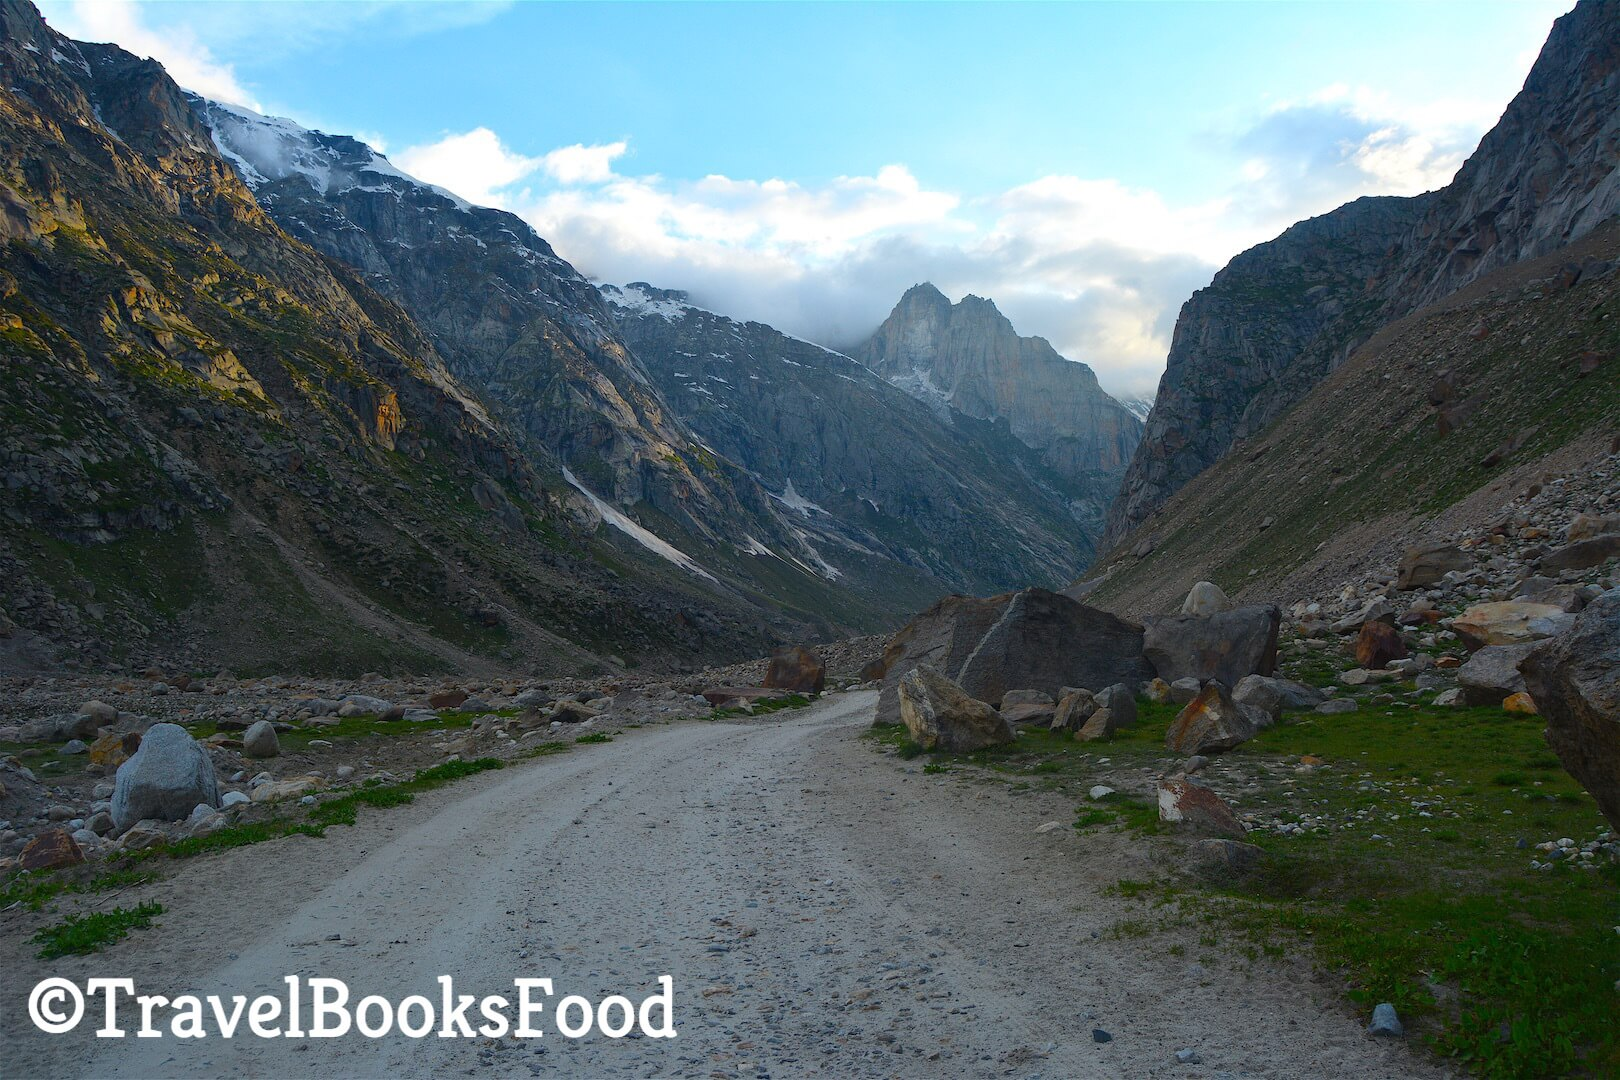 A gravel road in the middle of many mountains and some huge rocks